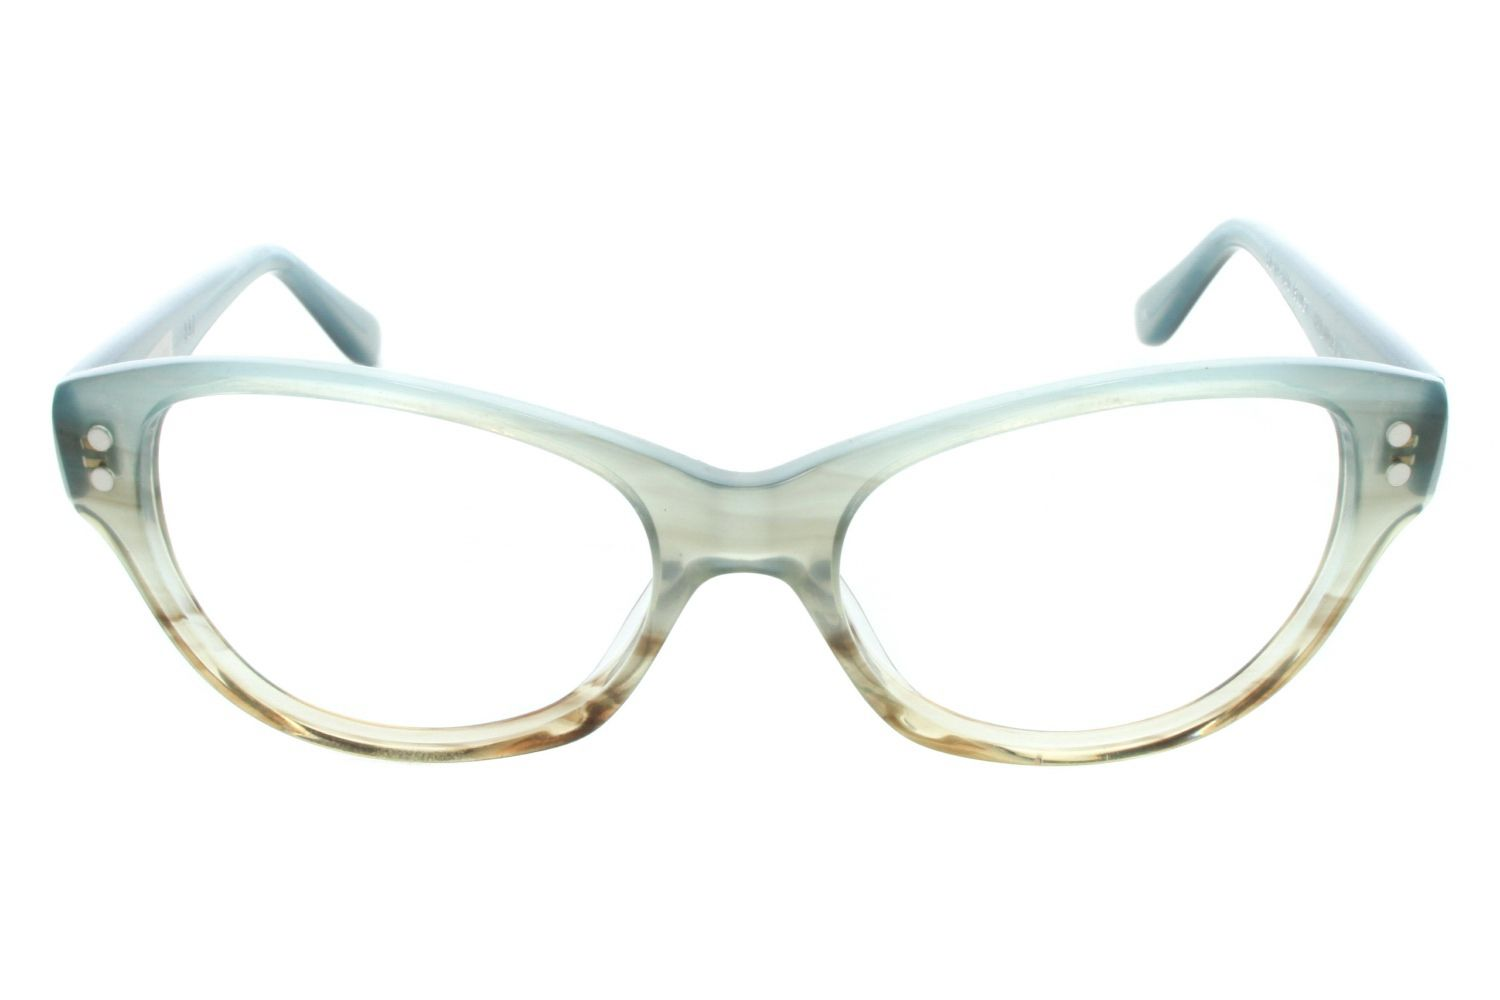 Fashion eyeglasses non prescription 8